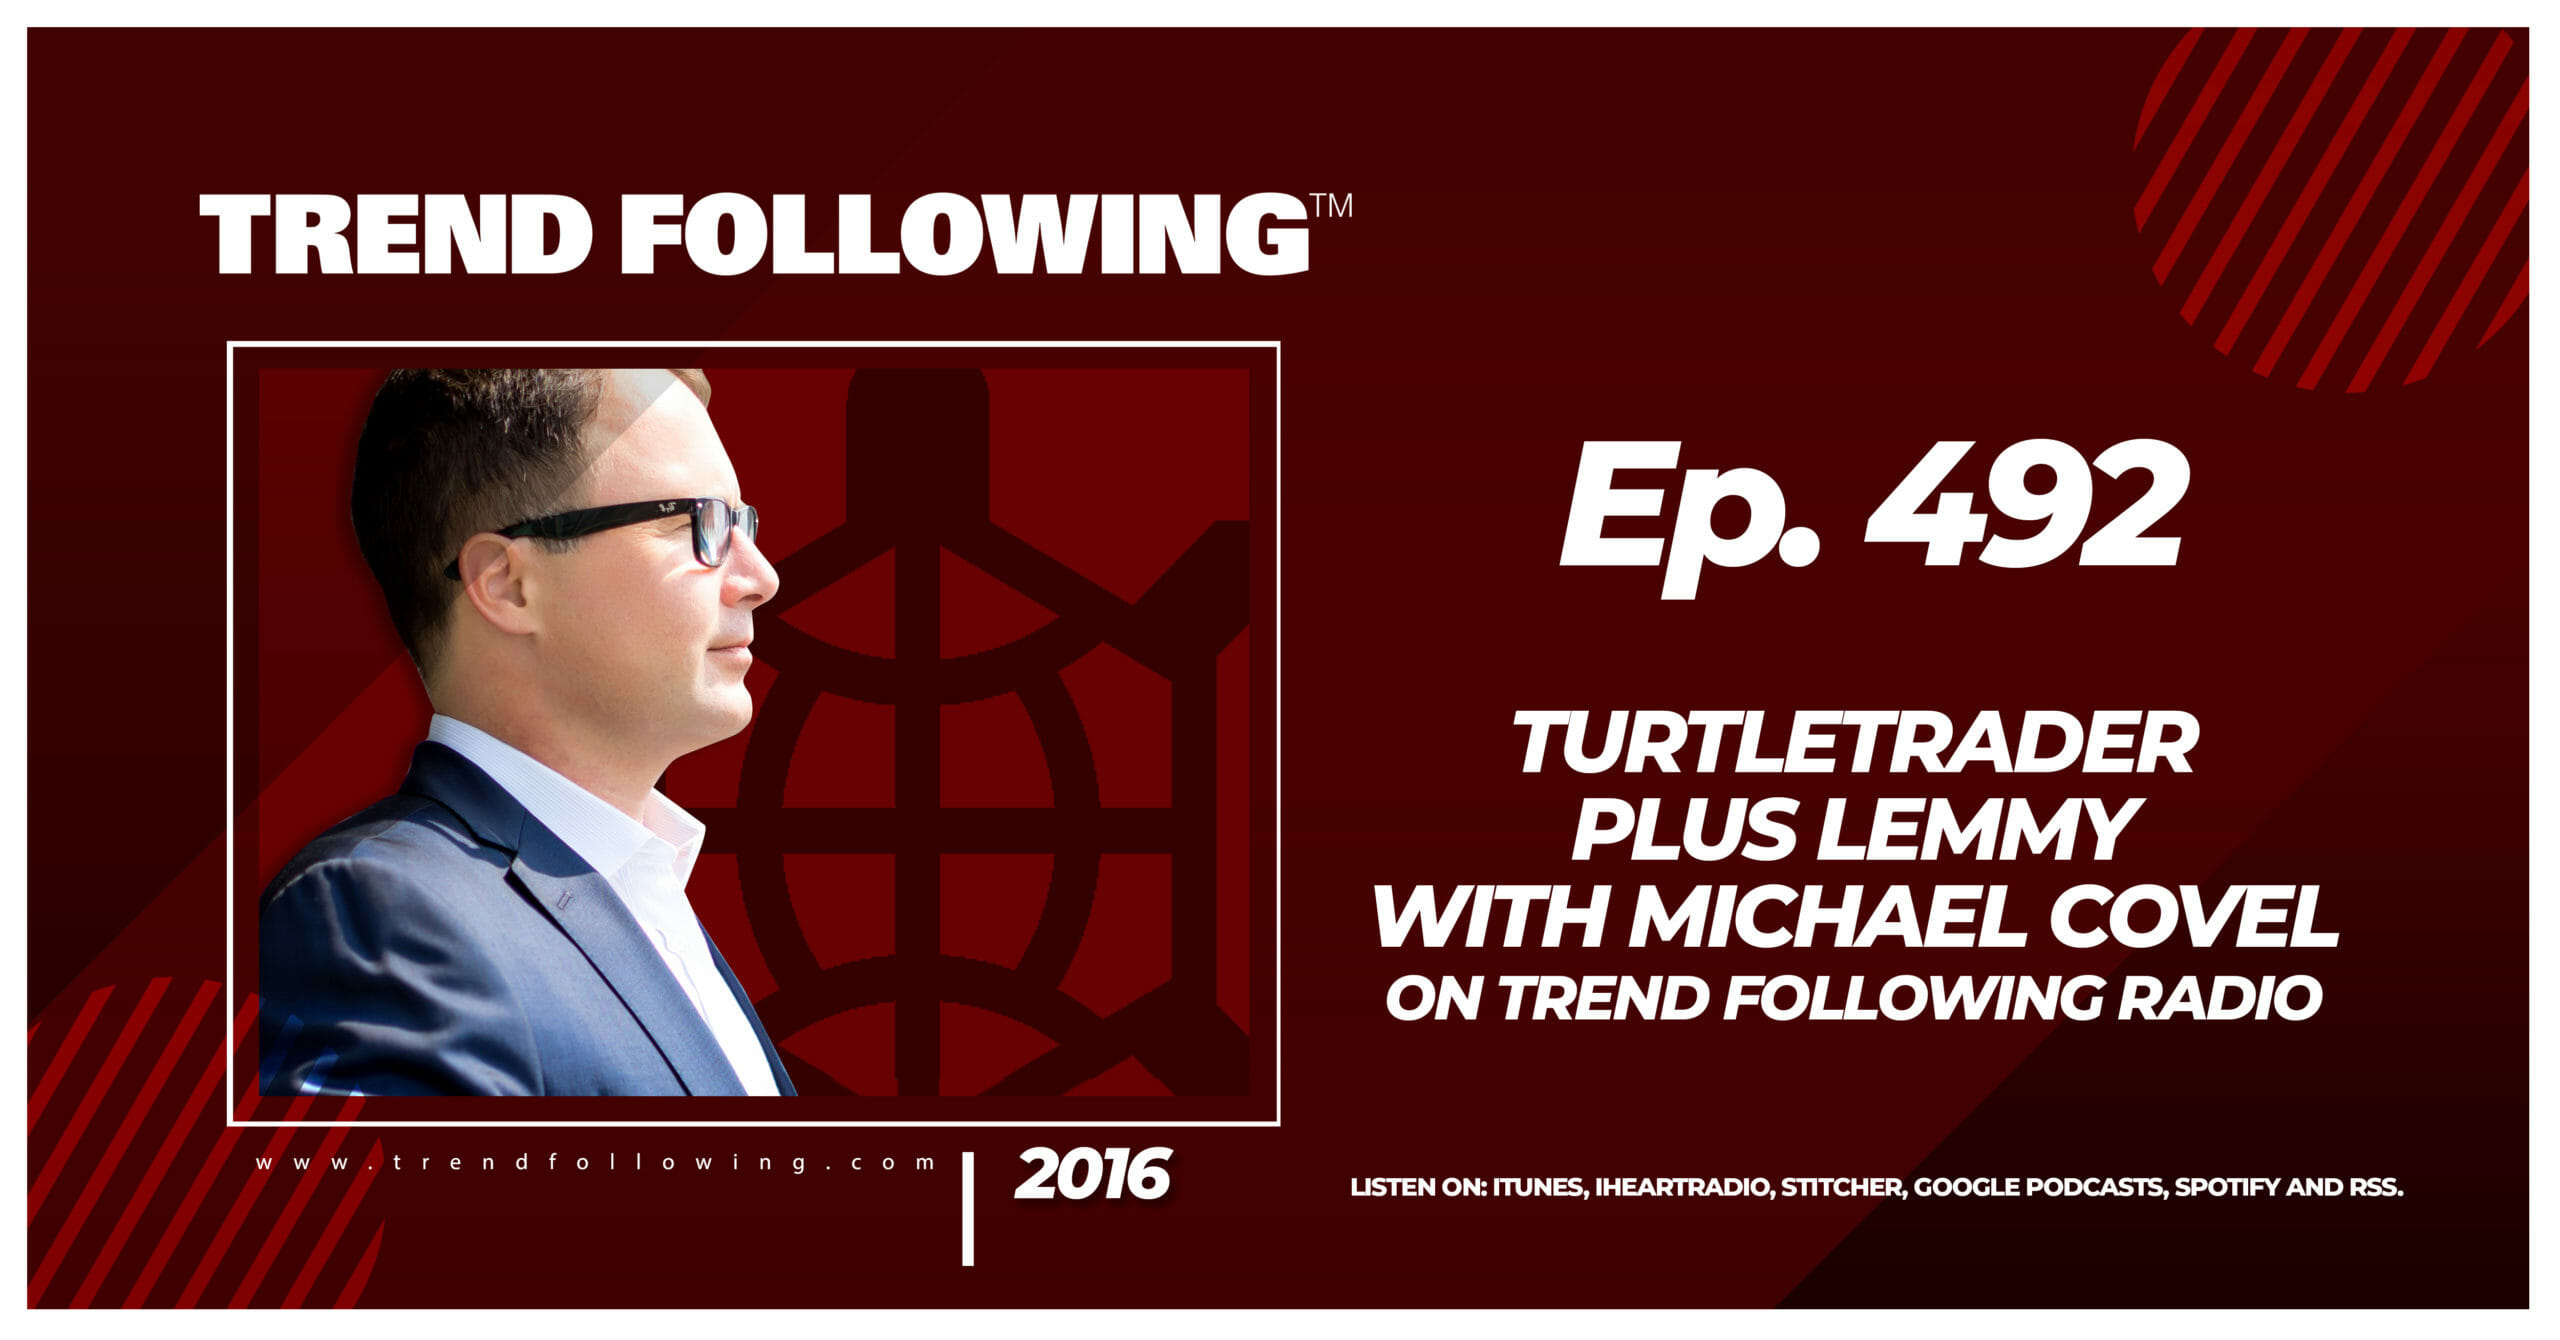 TurtleTrader Plus Lemmy with Michael Covel on Trend Following Radio